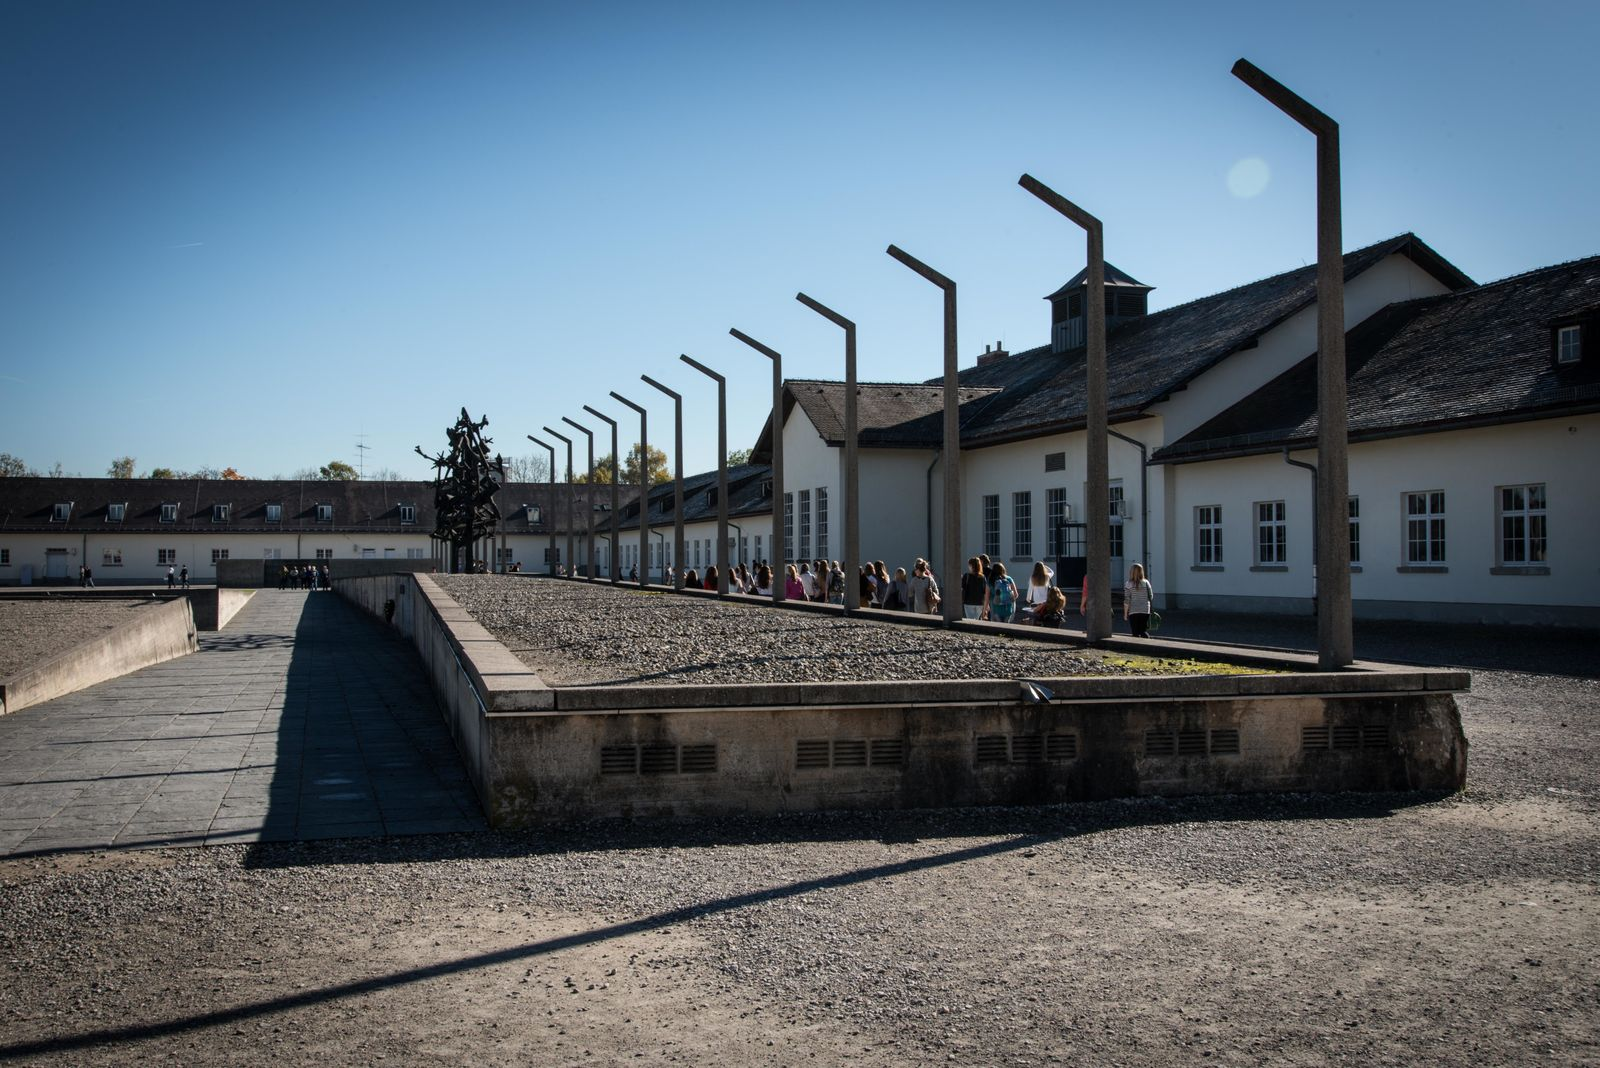 Dachau concentration camp in Germany was first opened as a